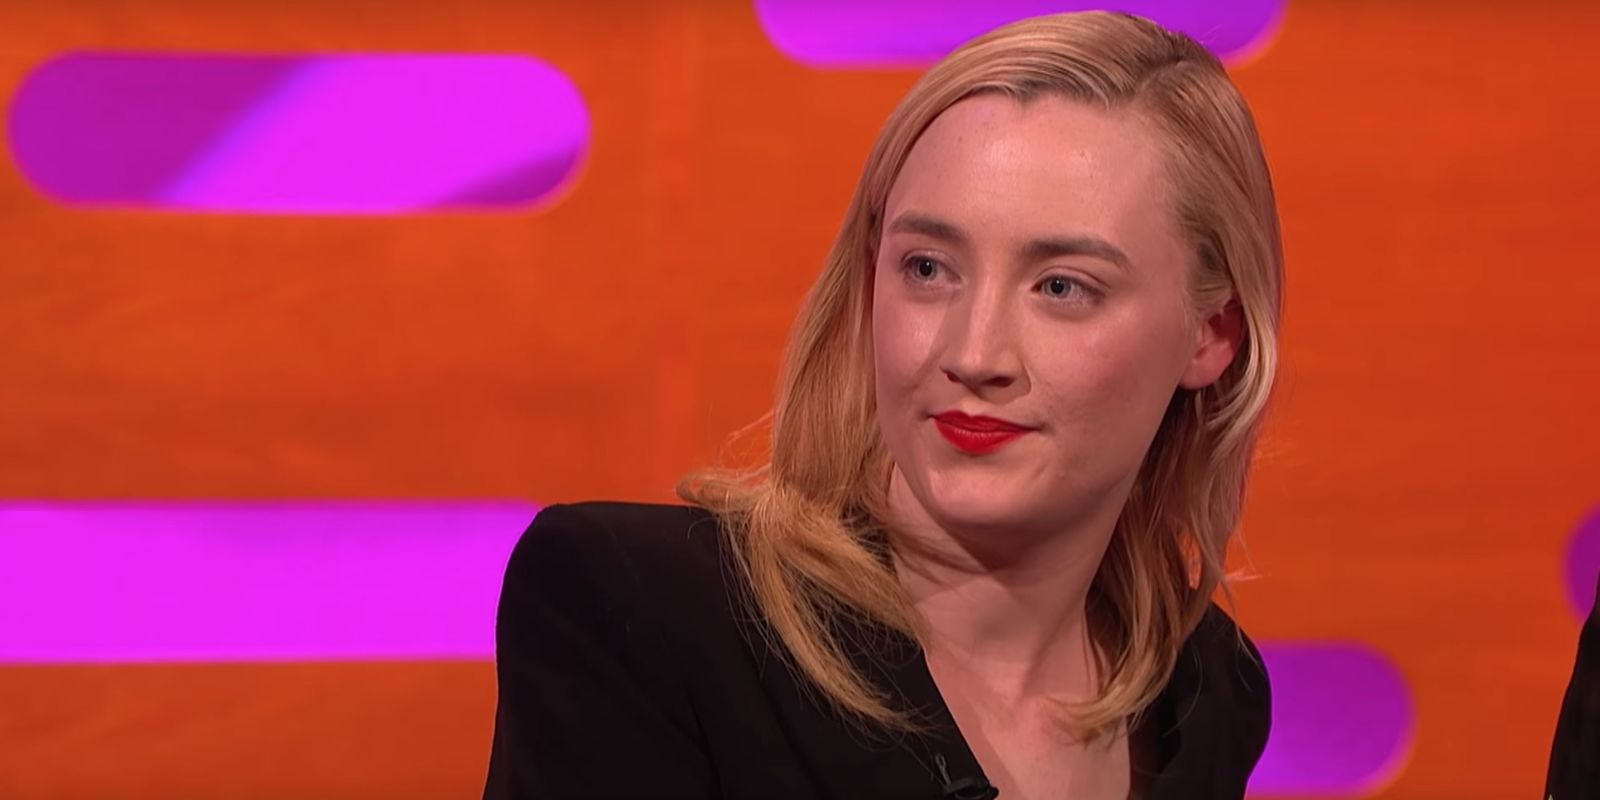 Saoirse Ronan reveals Lady Bird screening appearance fail